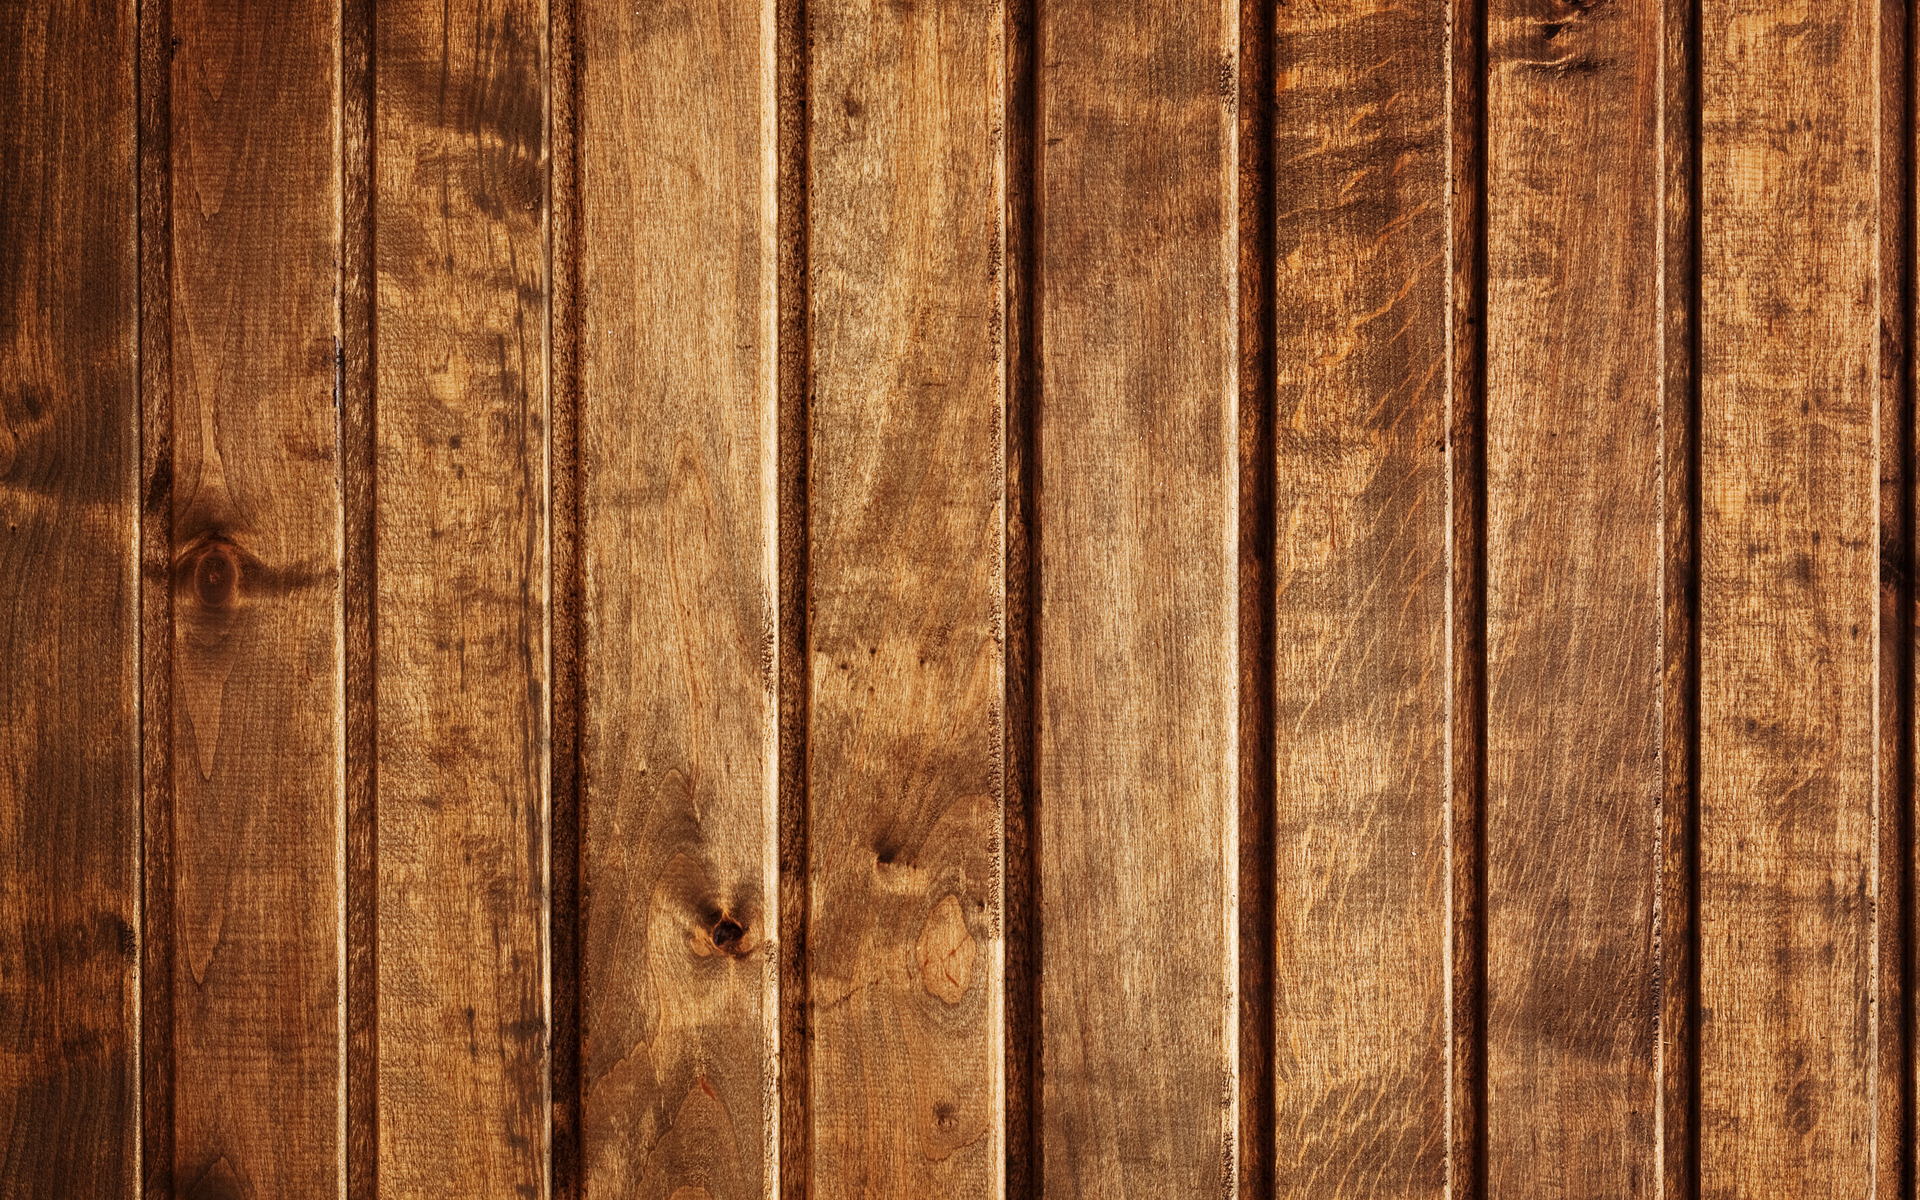 wooden boards texture background, wood